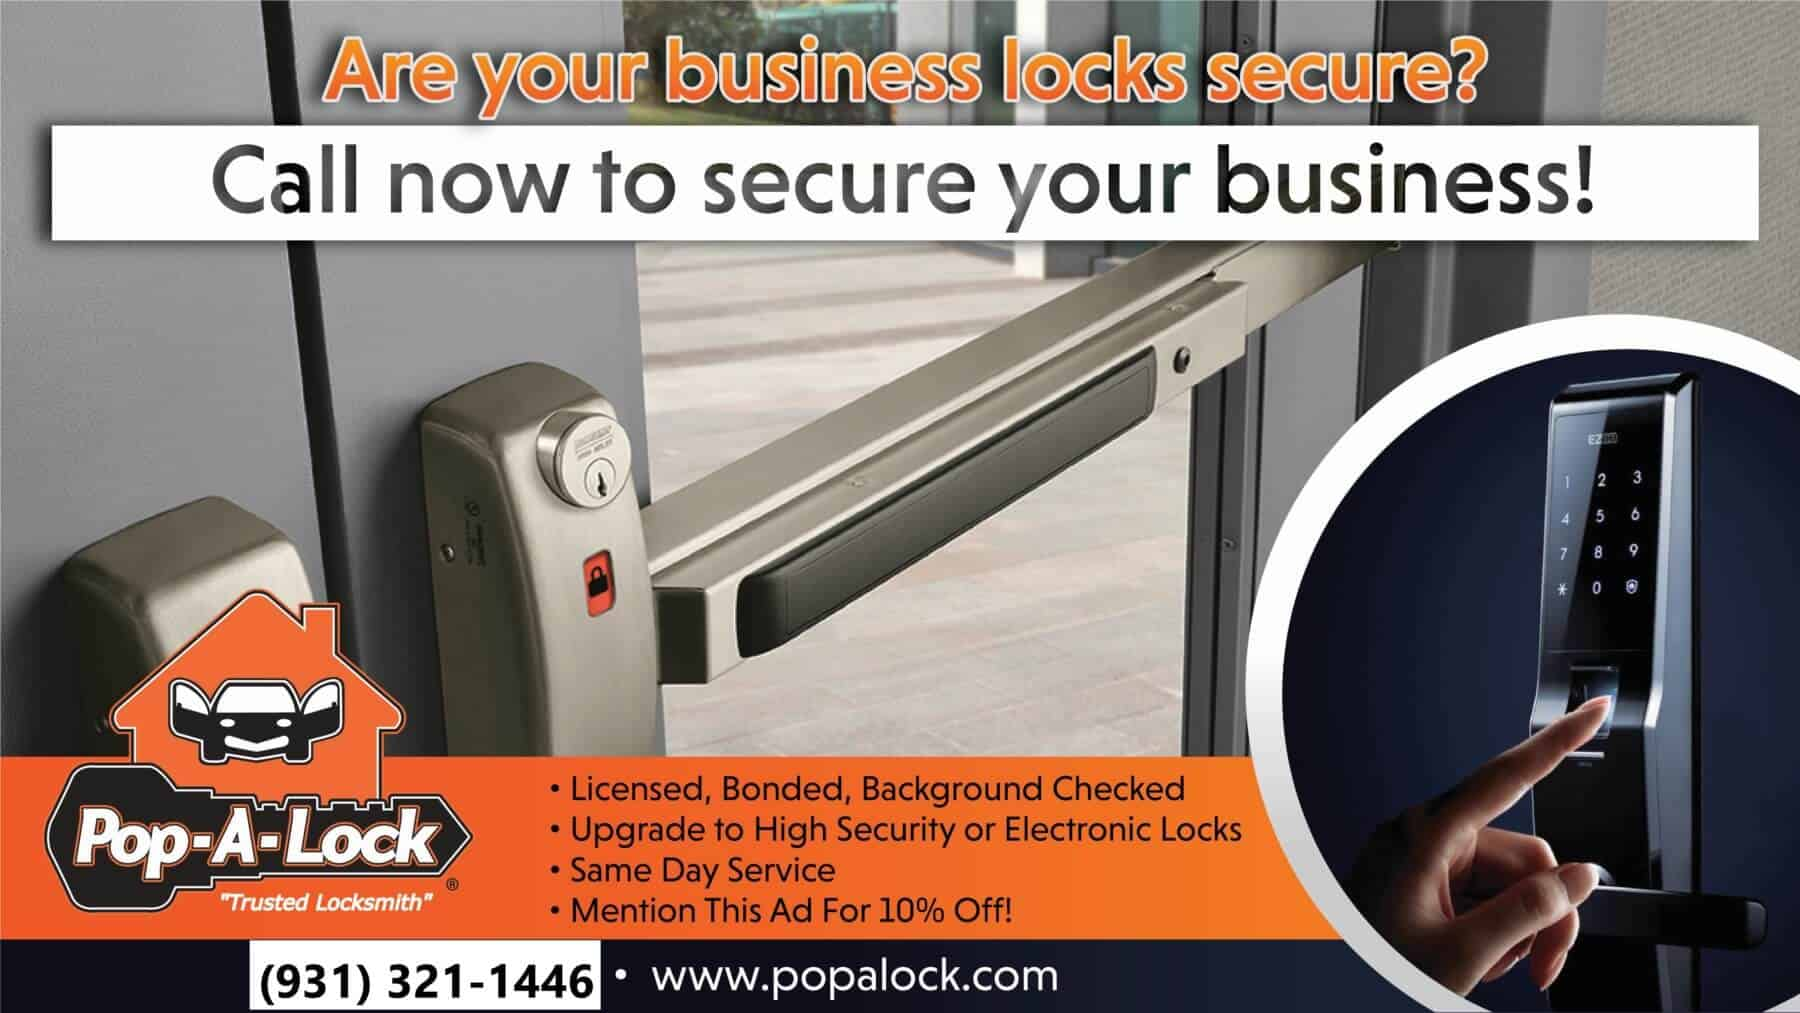 Are your business locks secure? Call now to secure your business Pop-A-Lock Clarksville